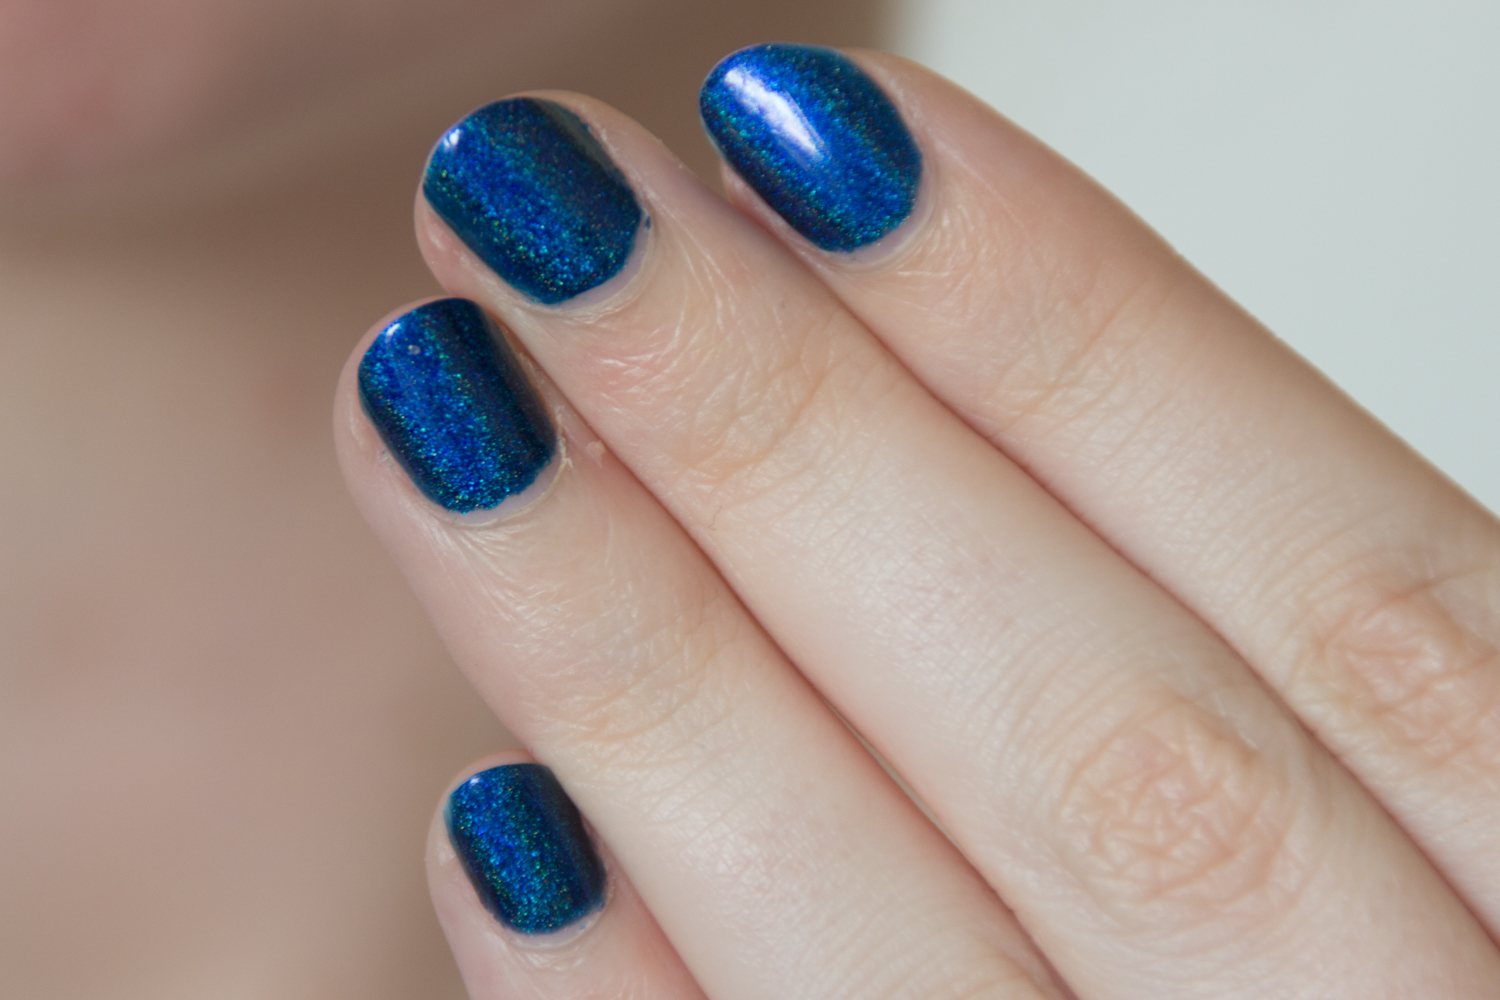 Enchanted-Polish-Presto-Magic-06